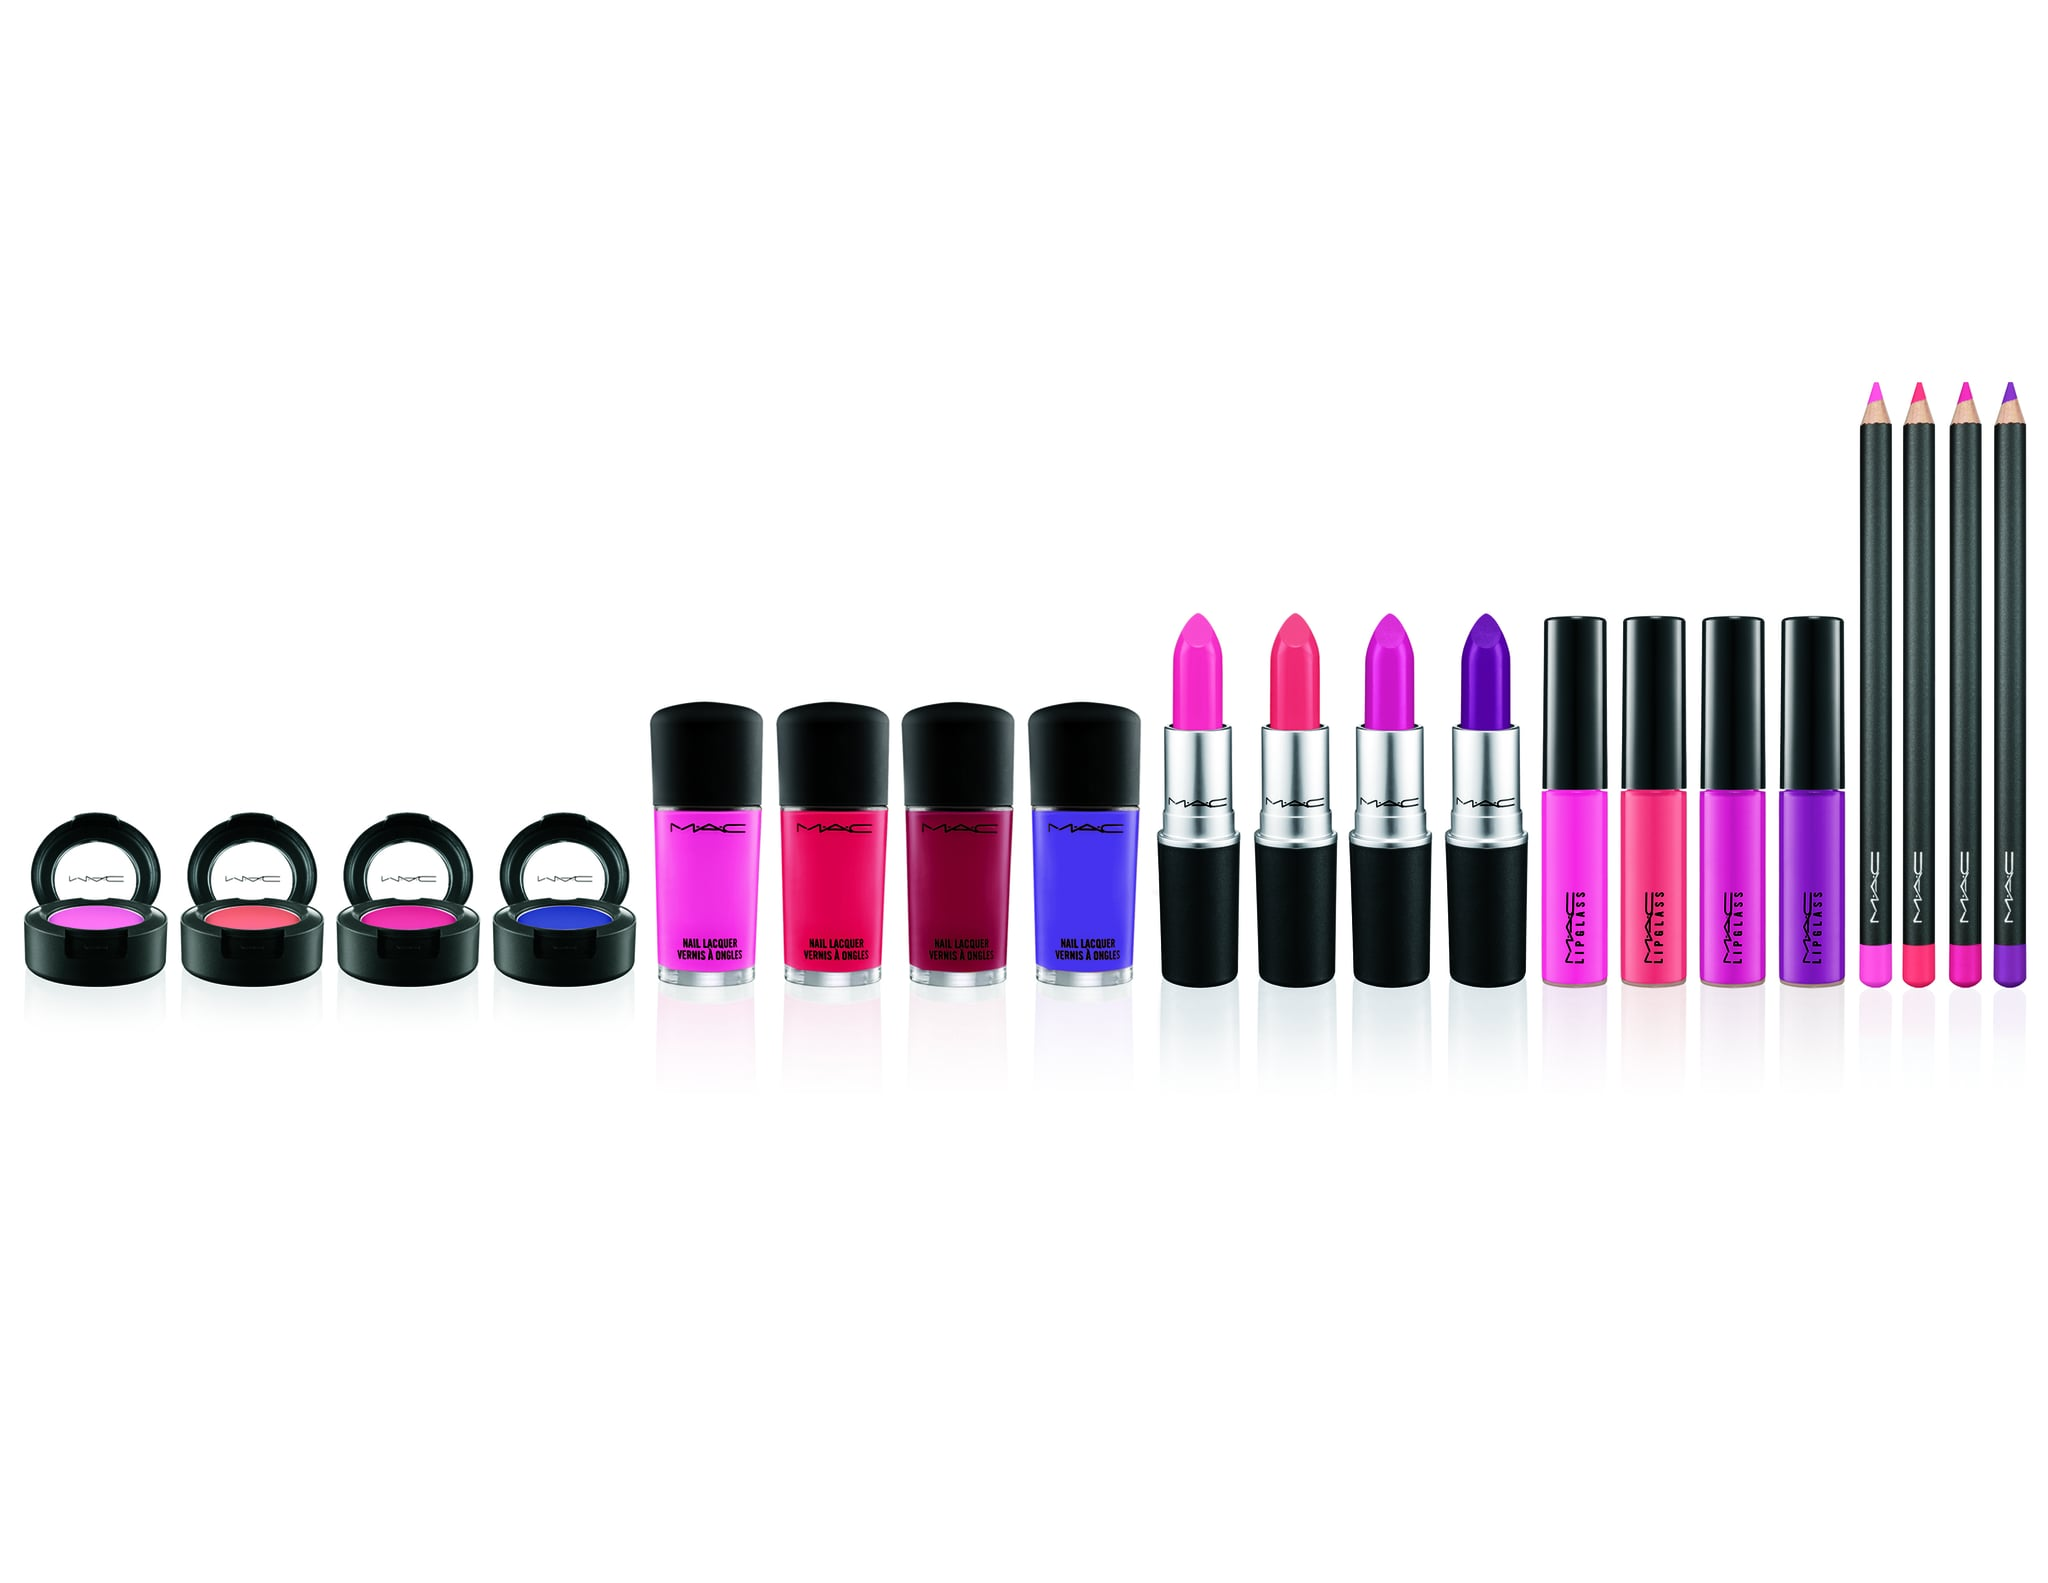 Matching Eyes, Lips, and Nails Is Easy With MAC's Monotone Makeup Sets